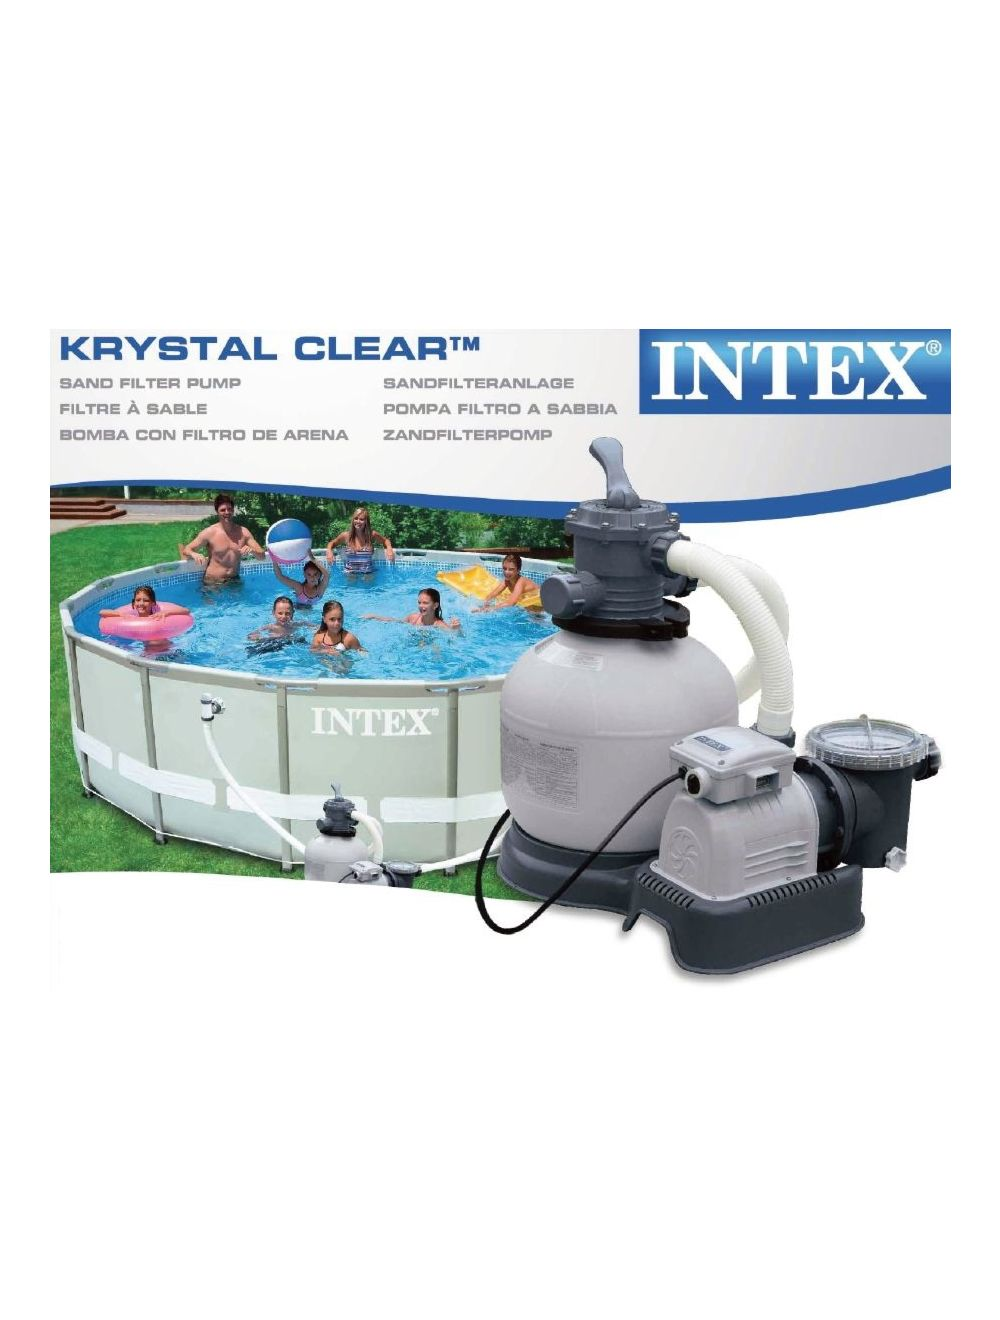 Intex Pool Nicht Rund Sandfilter Pool